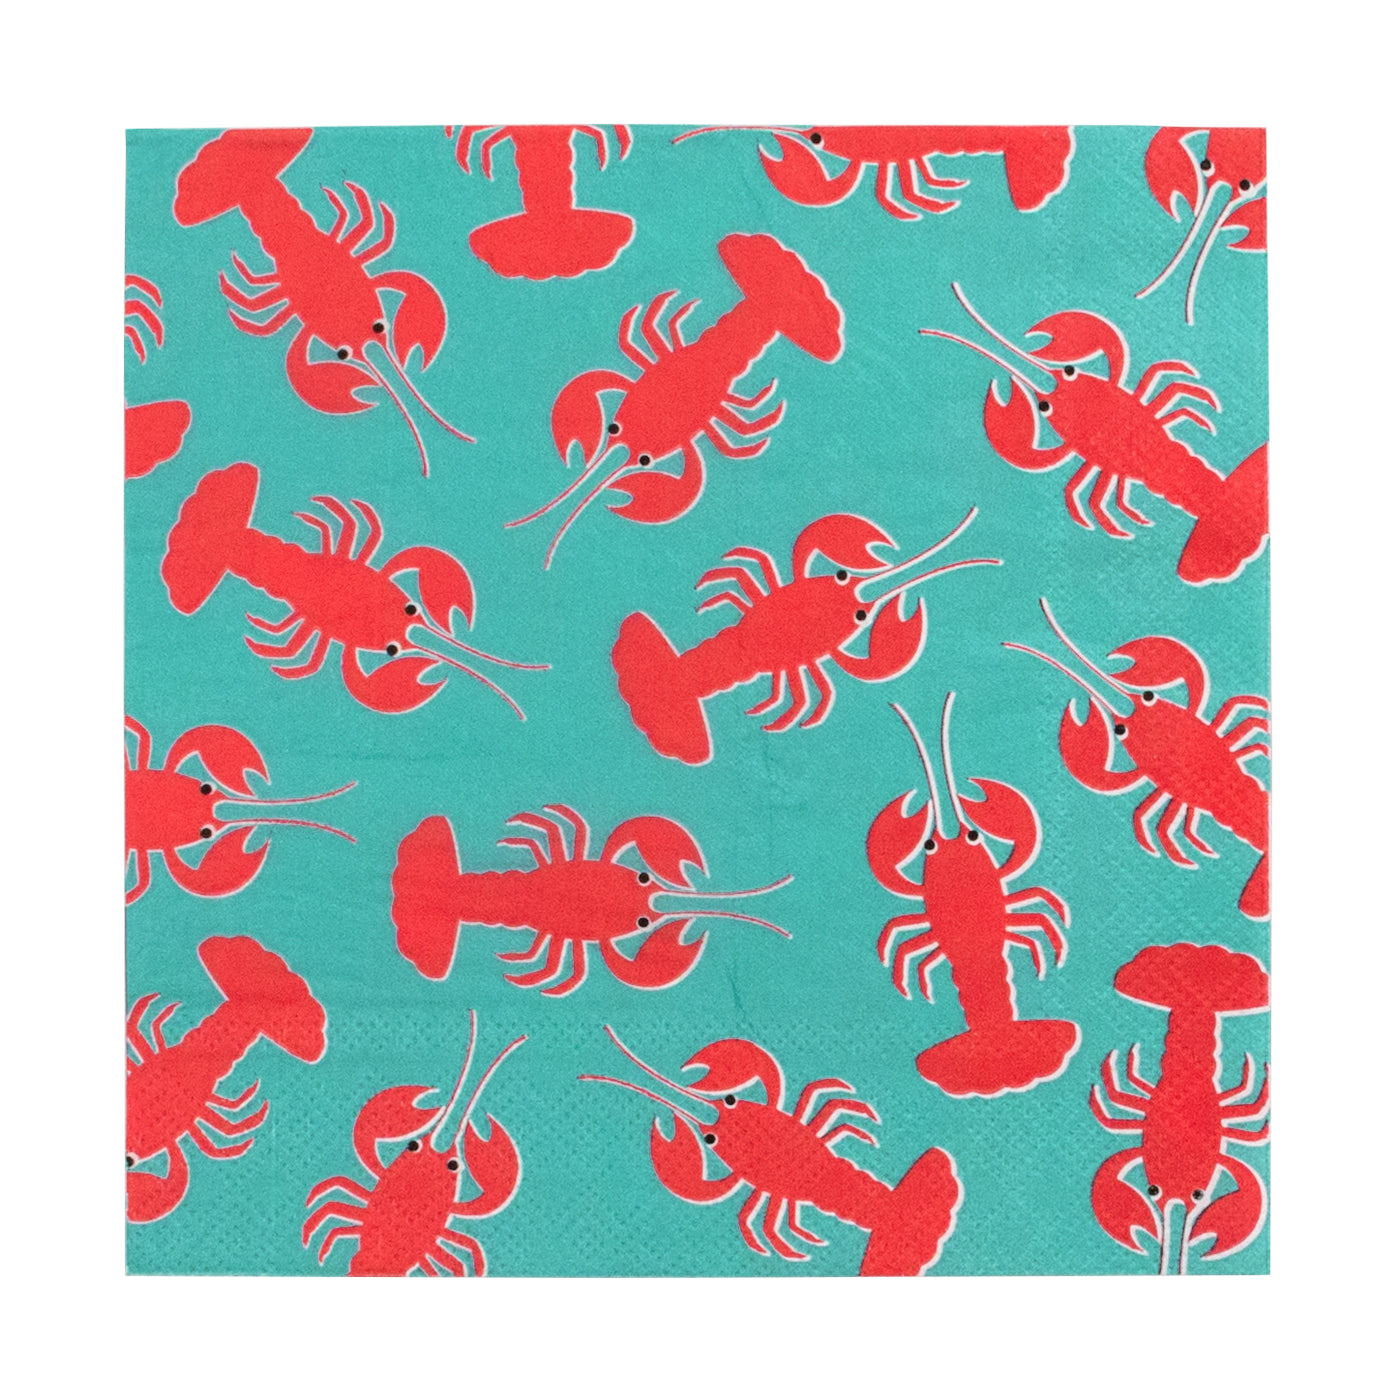 Lobster Napkins - Whoot Party Boutique